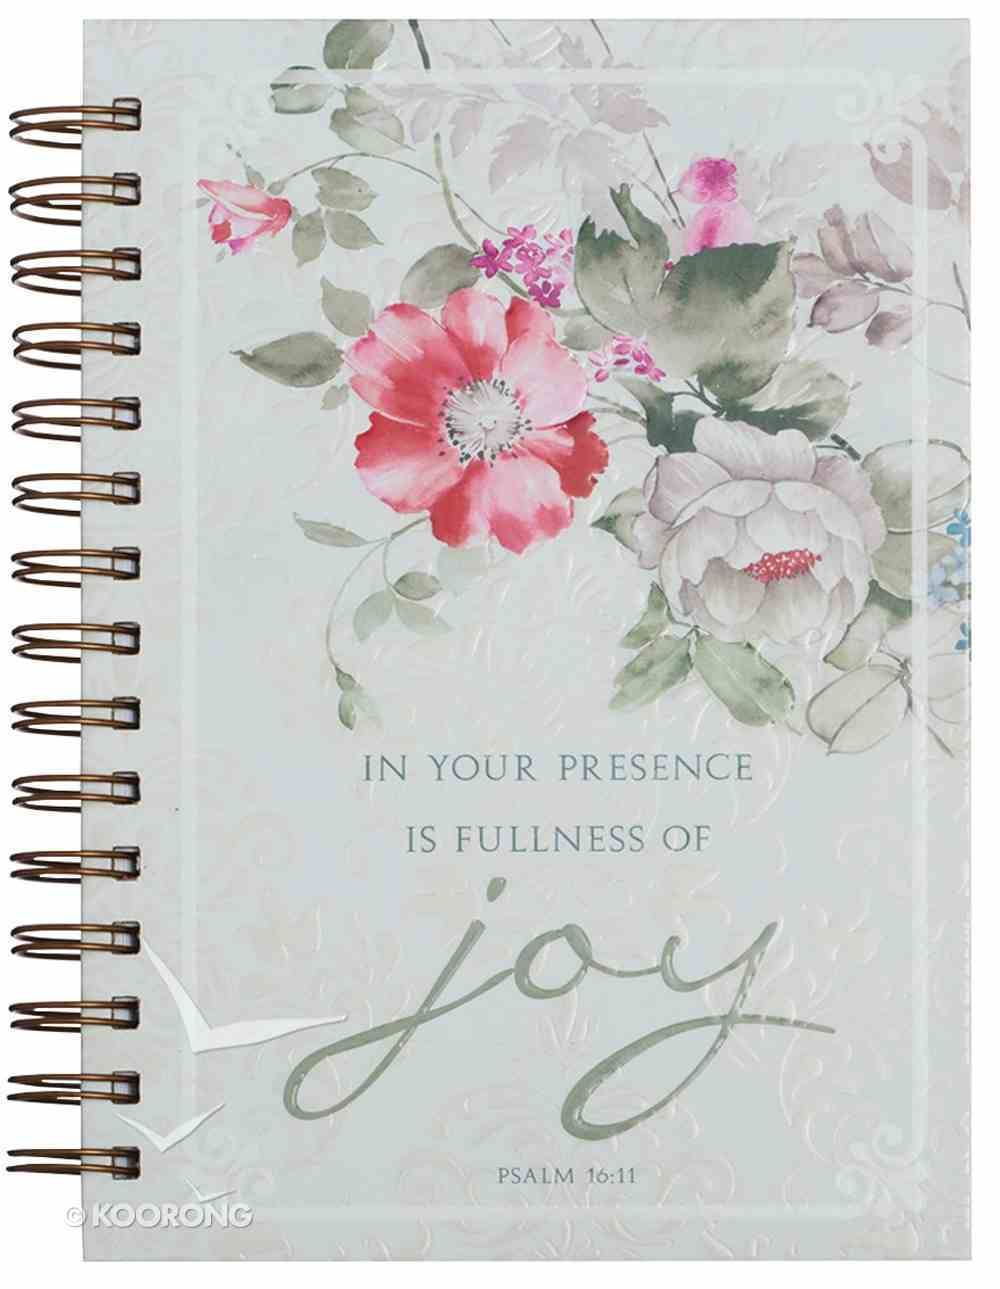 Spiral Journal: In Your Presence is Fullness of Joy, Red/White Flowers (Large) (Psalm 16:11) Spiral